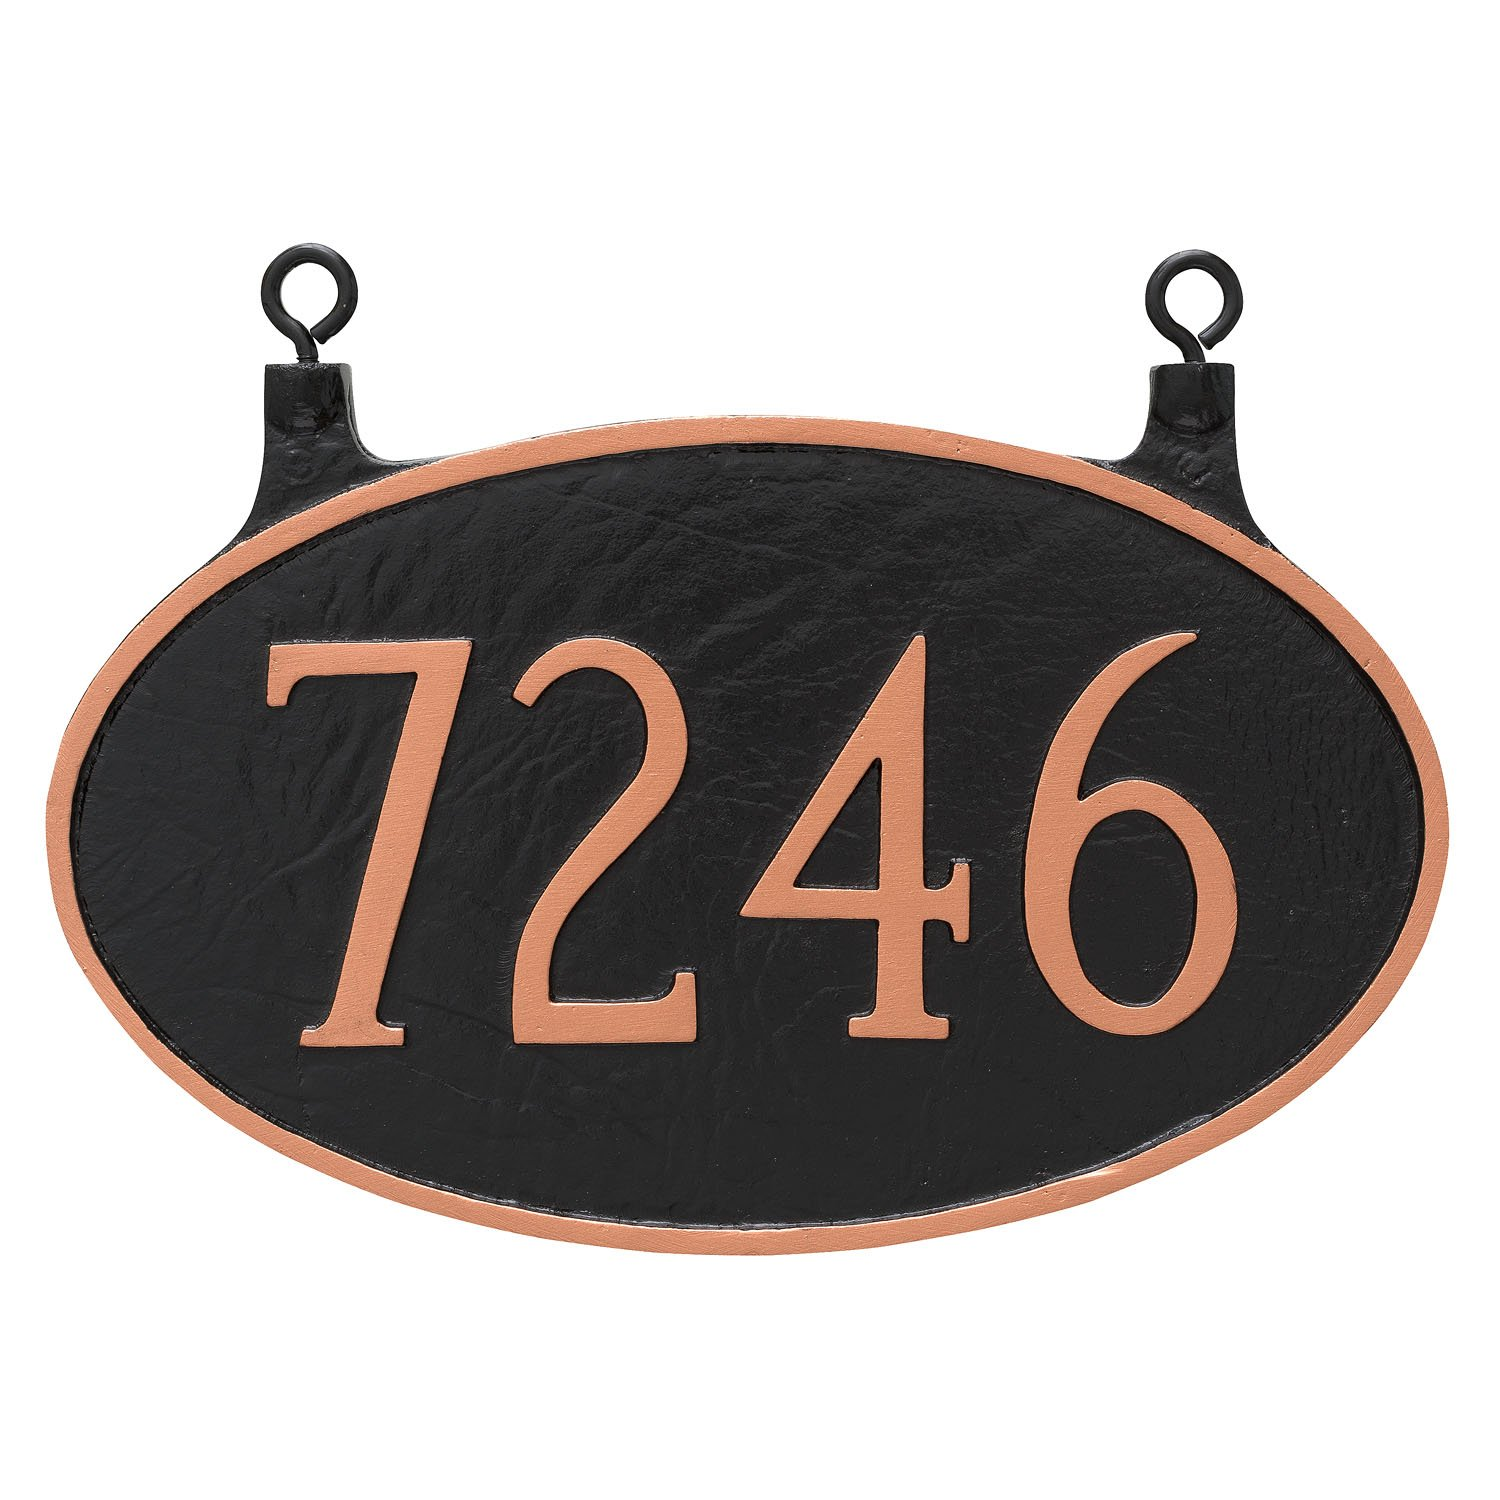 Montague Metal TSH-0001S1-H-BS 8.5'' x 13.5'' Double Sided Hanging Classic Oval Address Sign Plaque, Standard, Black/Silver